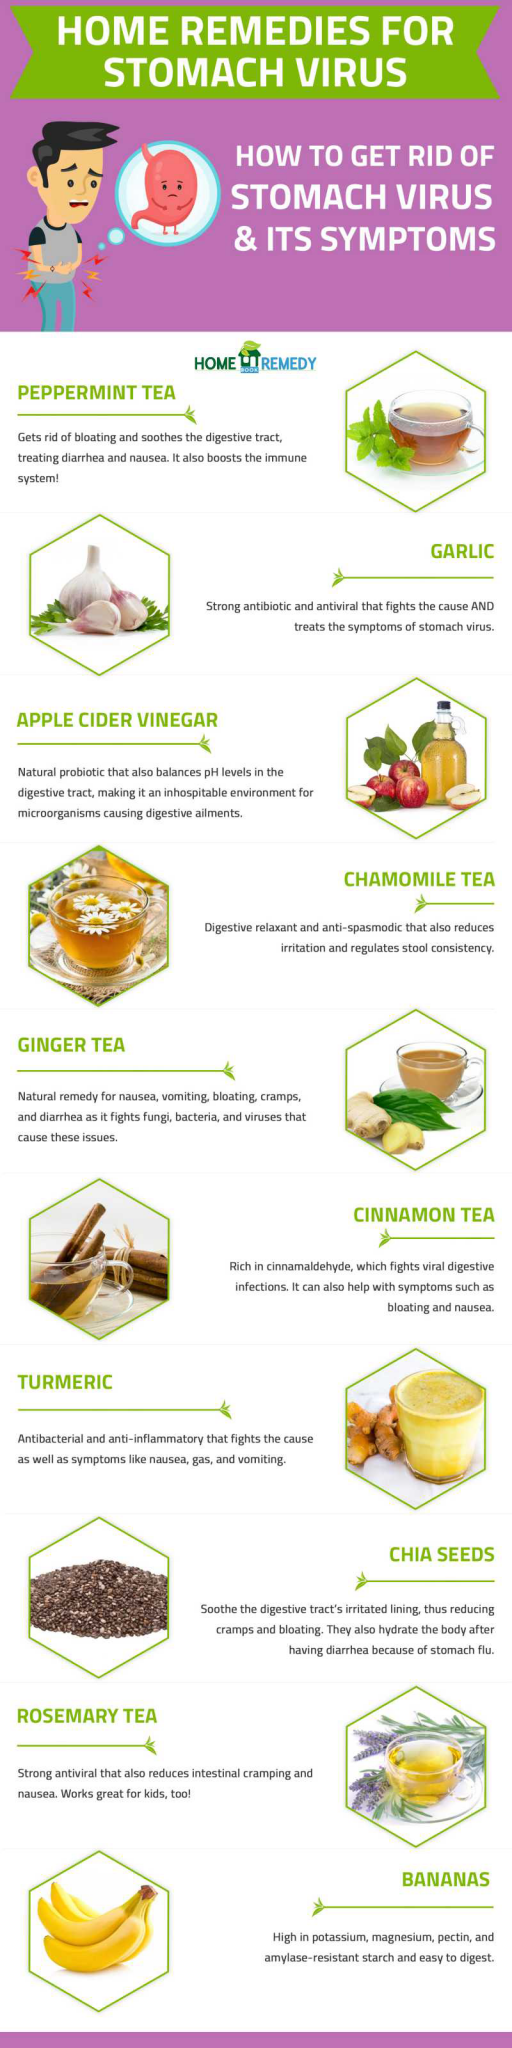 Home Remedies for Stomach Virus